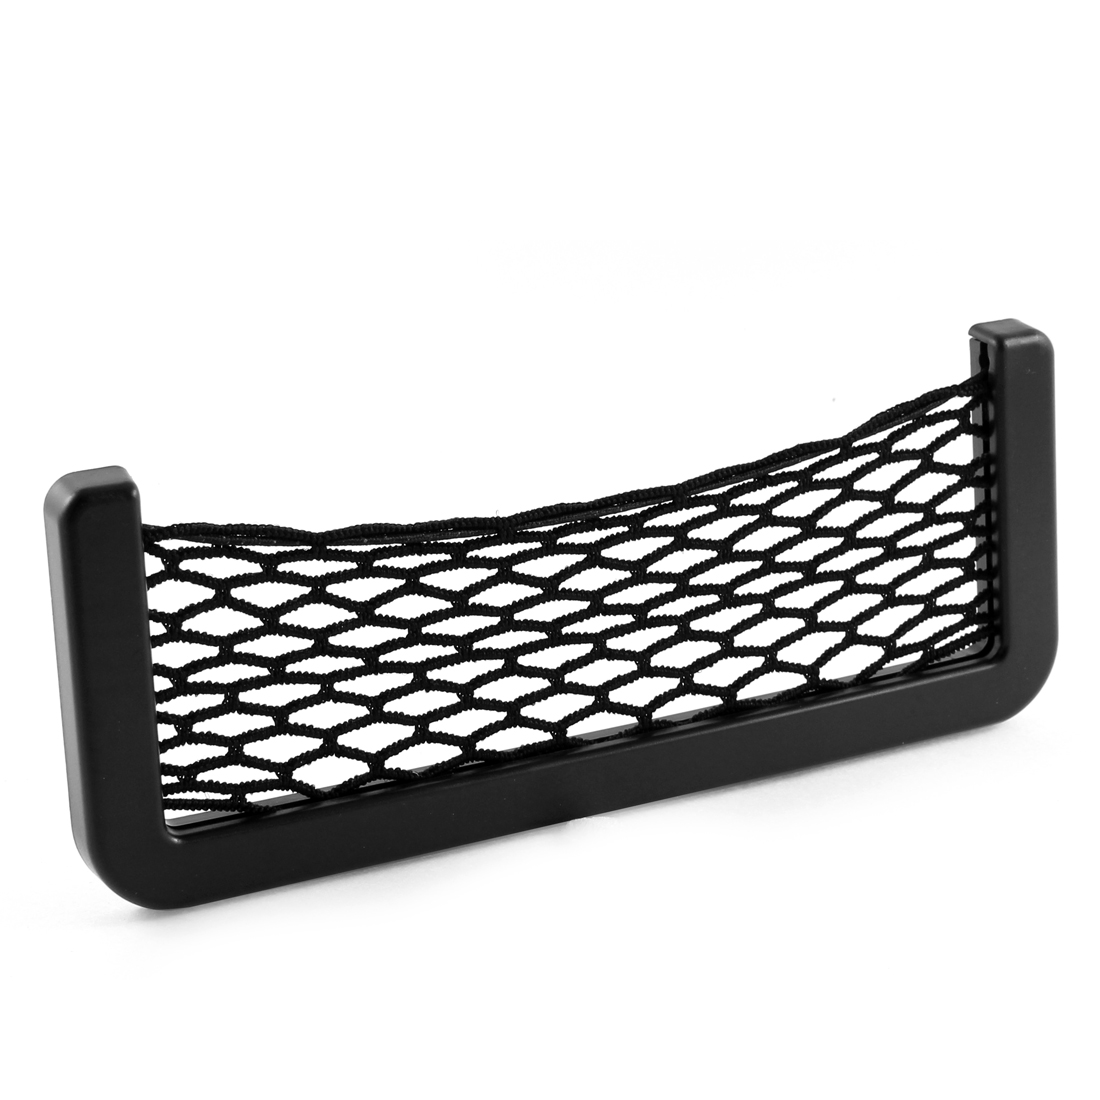 Van Black Plastic Stretchy Nylon Net String Design Phone Card Bag Holder